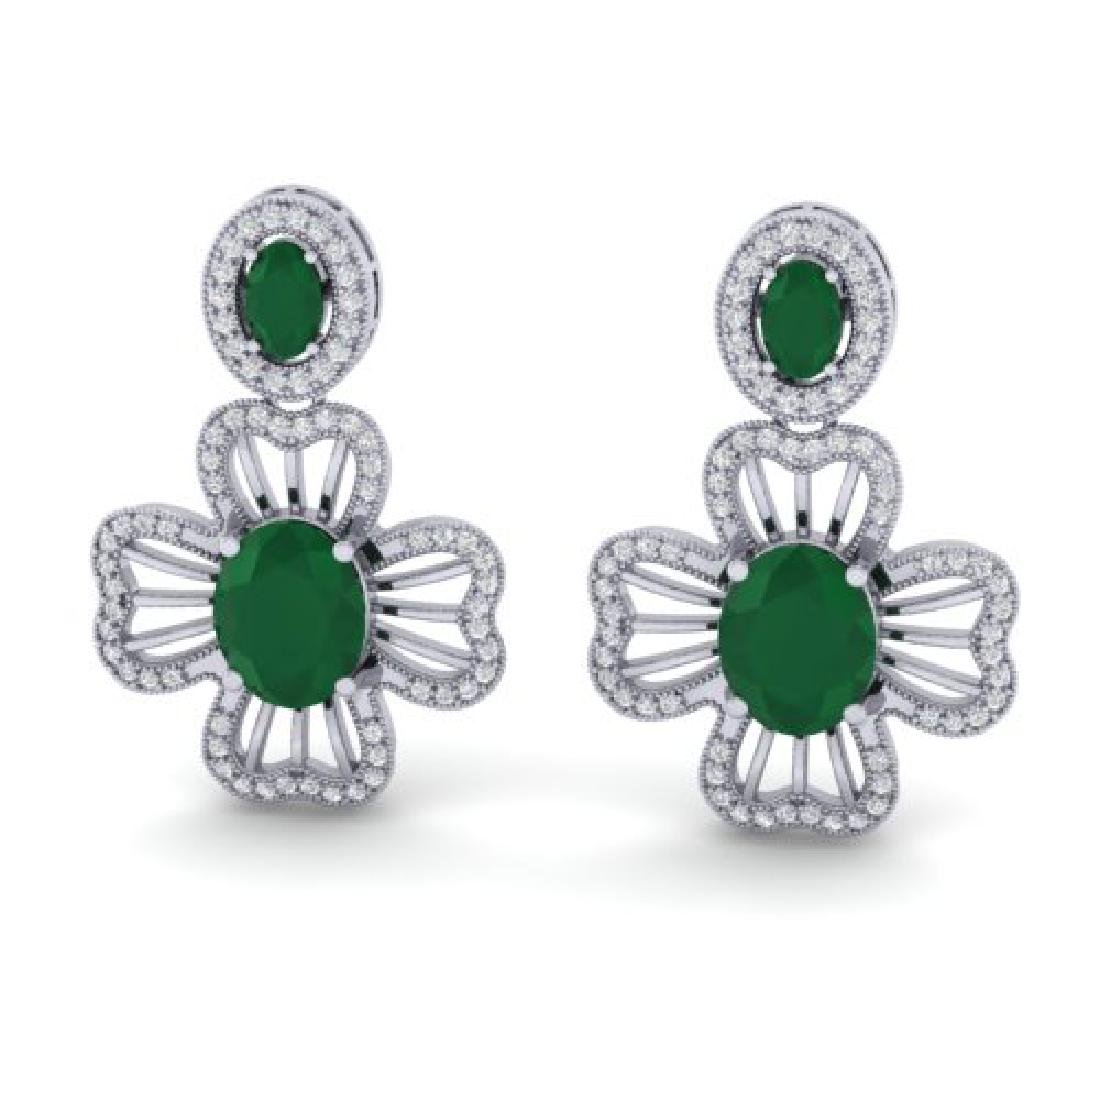 9.26 CTW Emerald & Micro Pave VS/SI Diamond Earrings